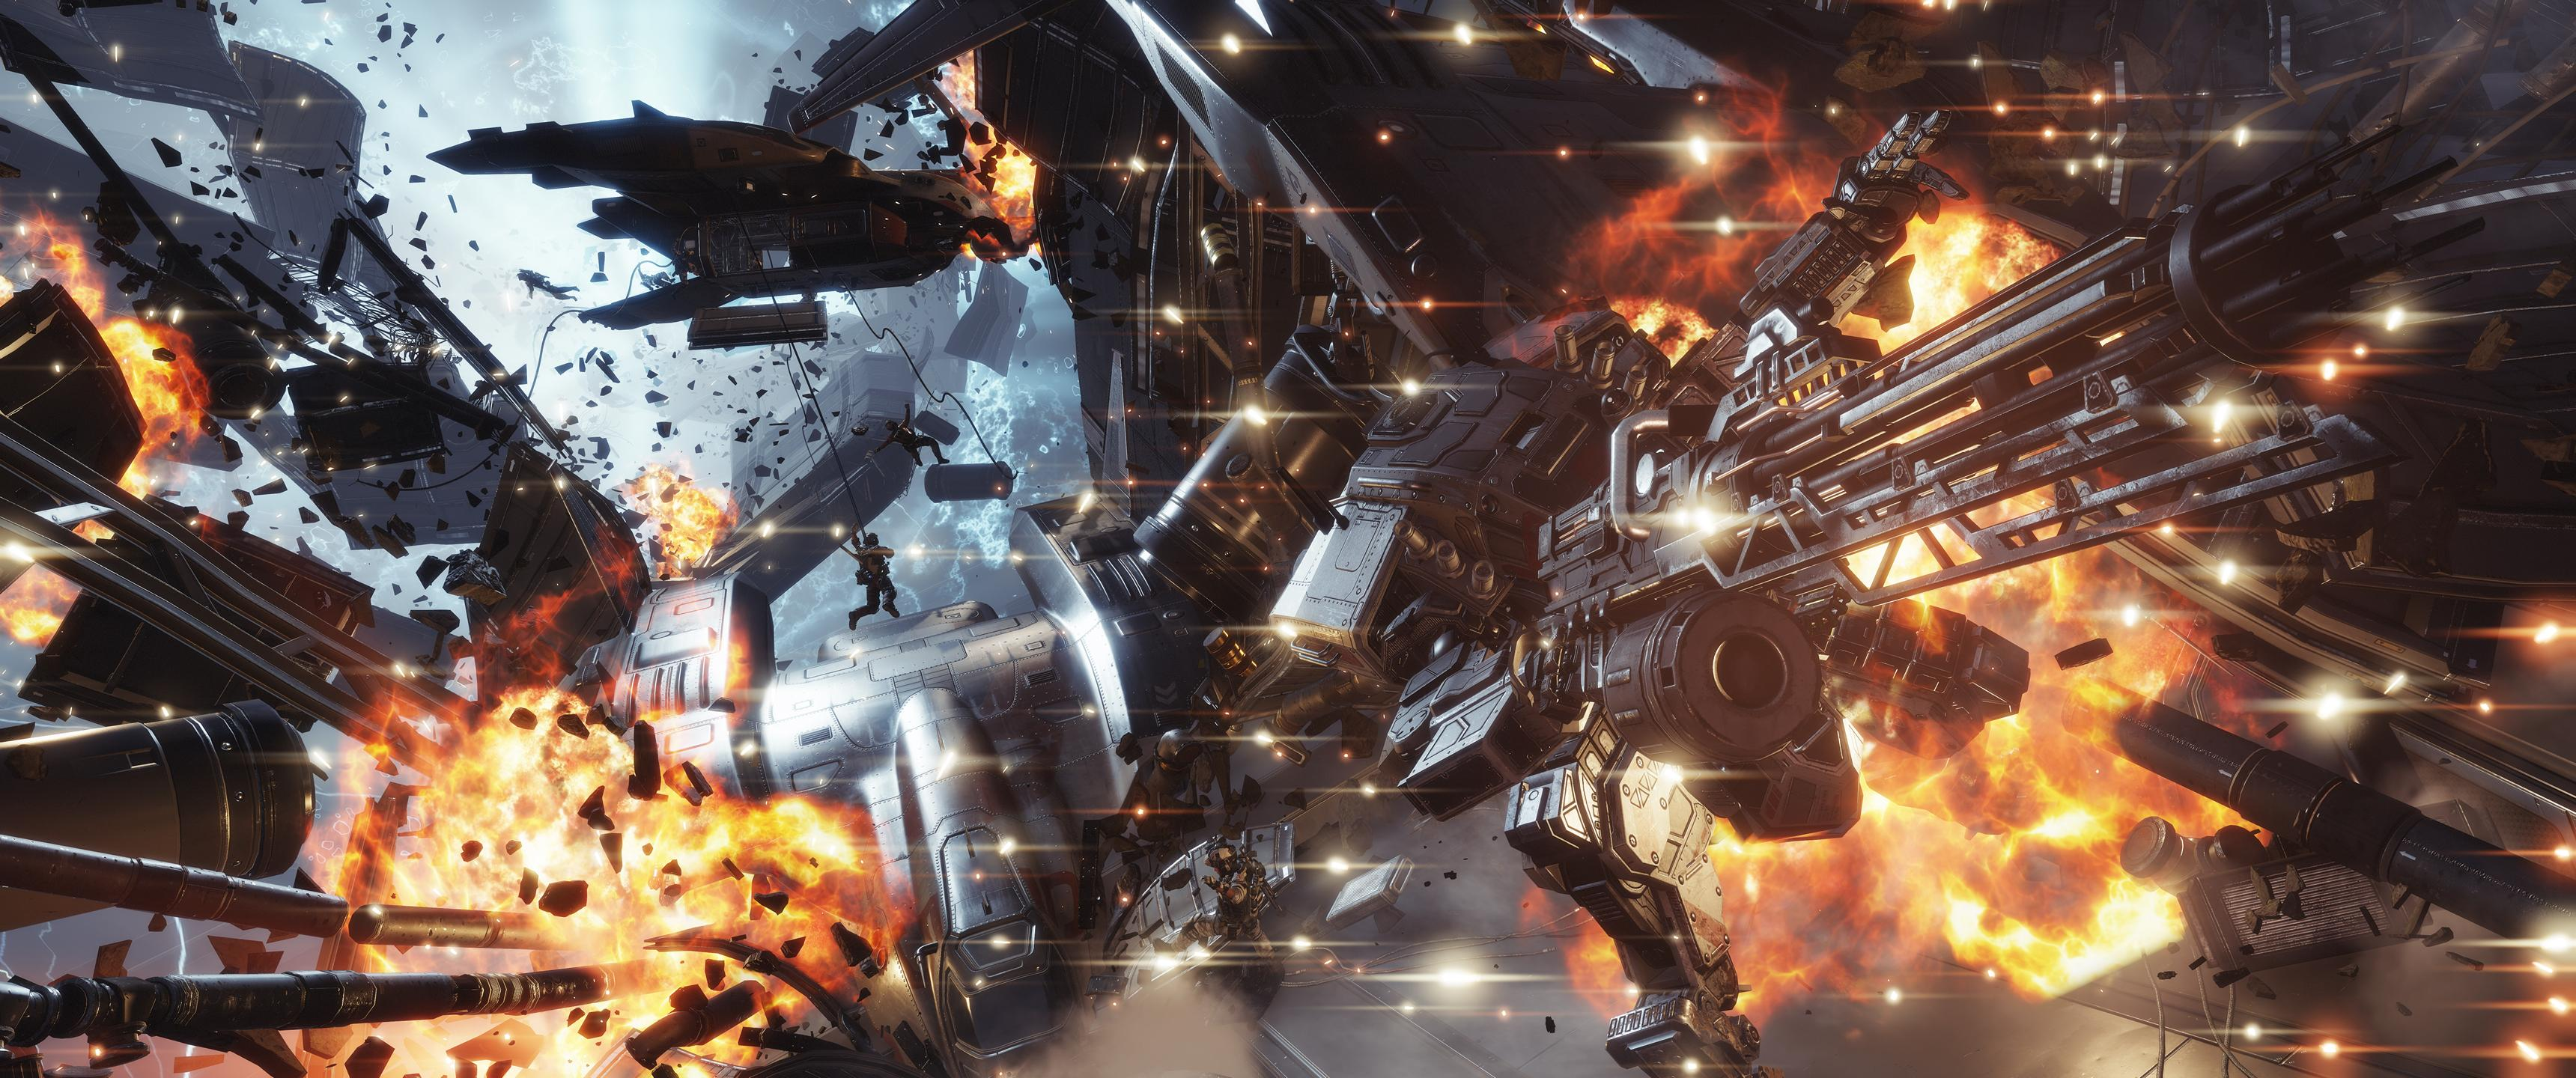 titanfall 2 wallpapers pictures images